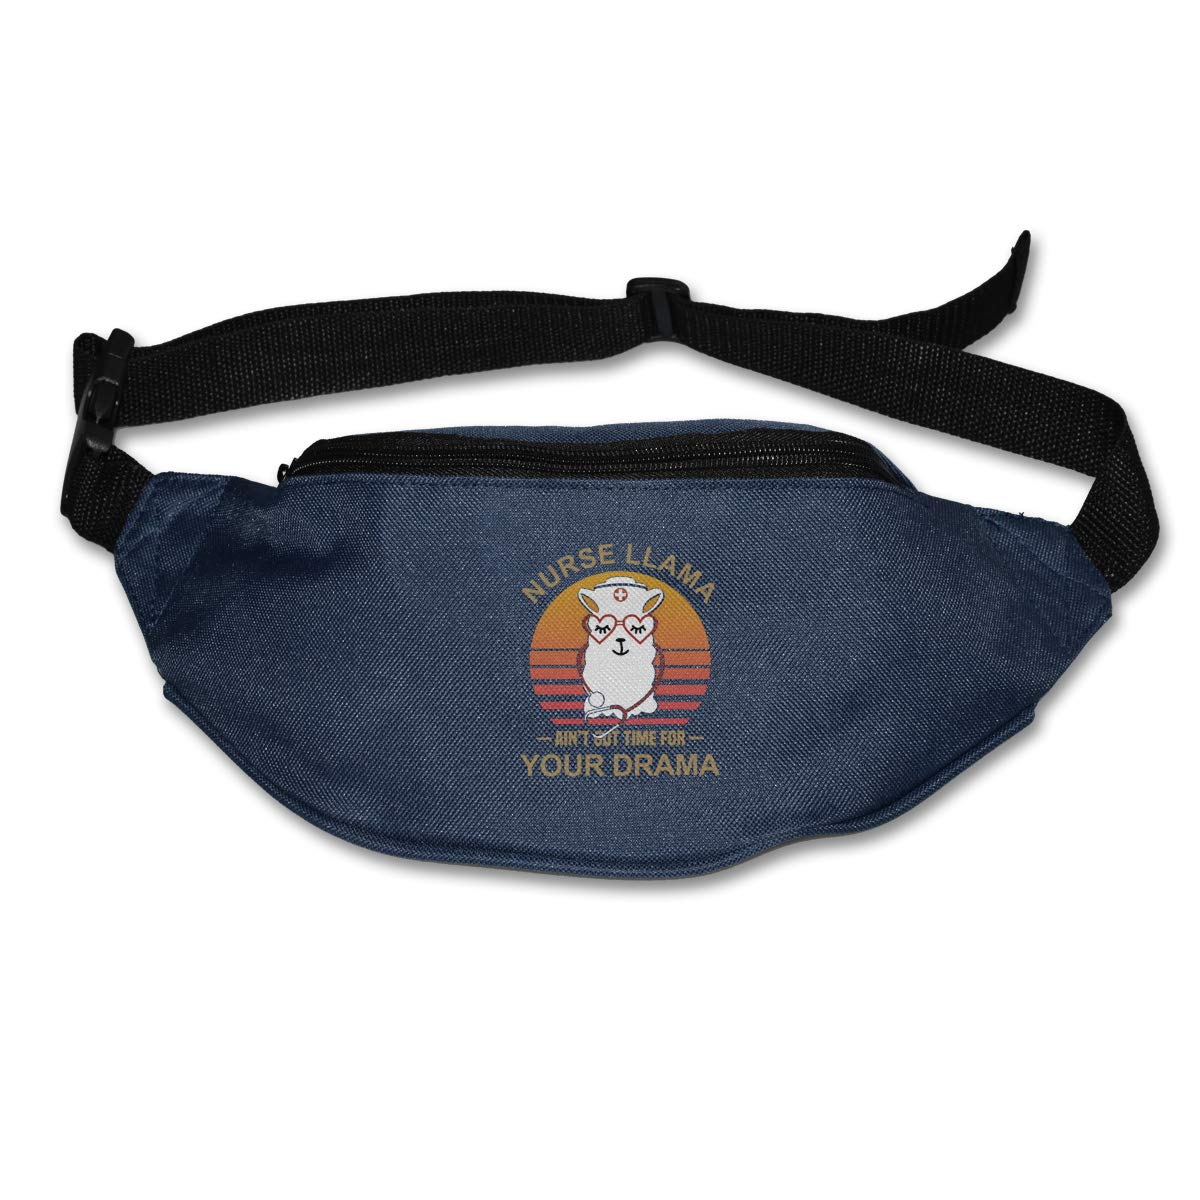 Nurse Llama Aint Out Time For Your Drama Sport Waist Pack Fanny Pack Adjustable